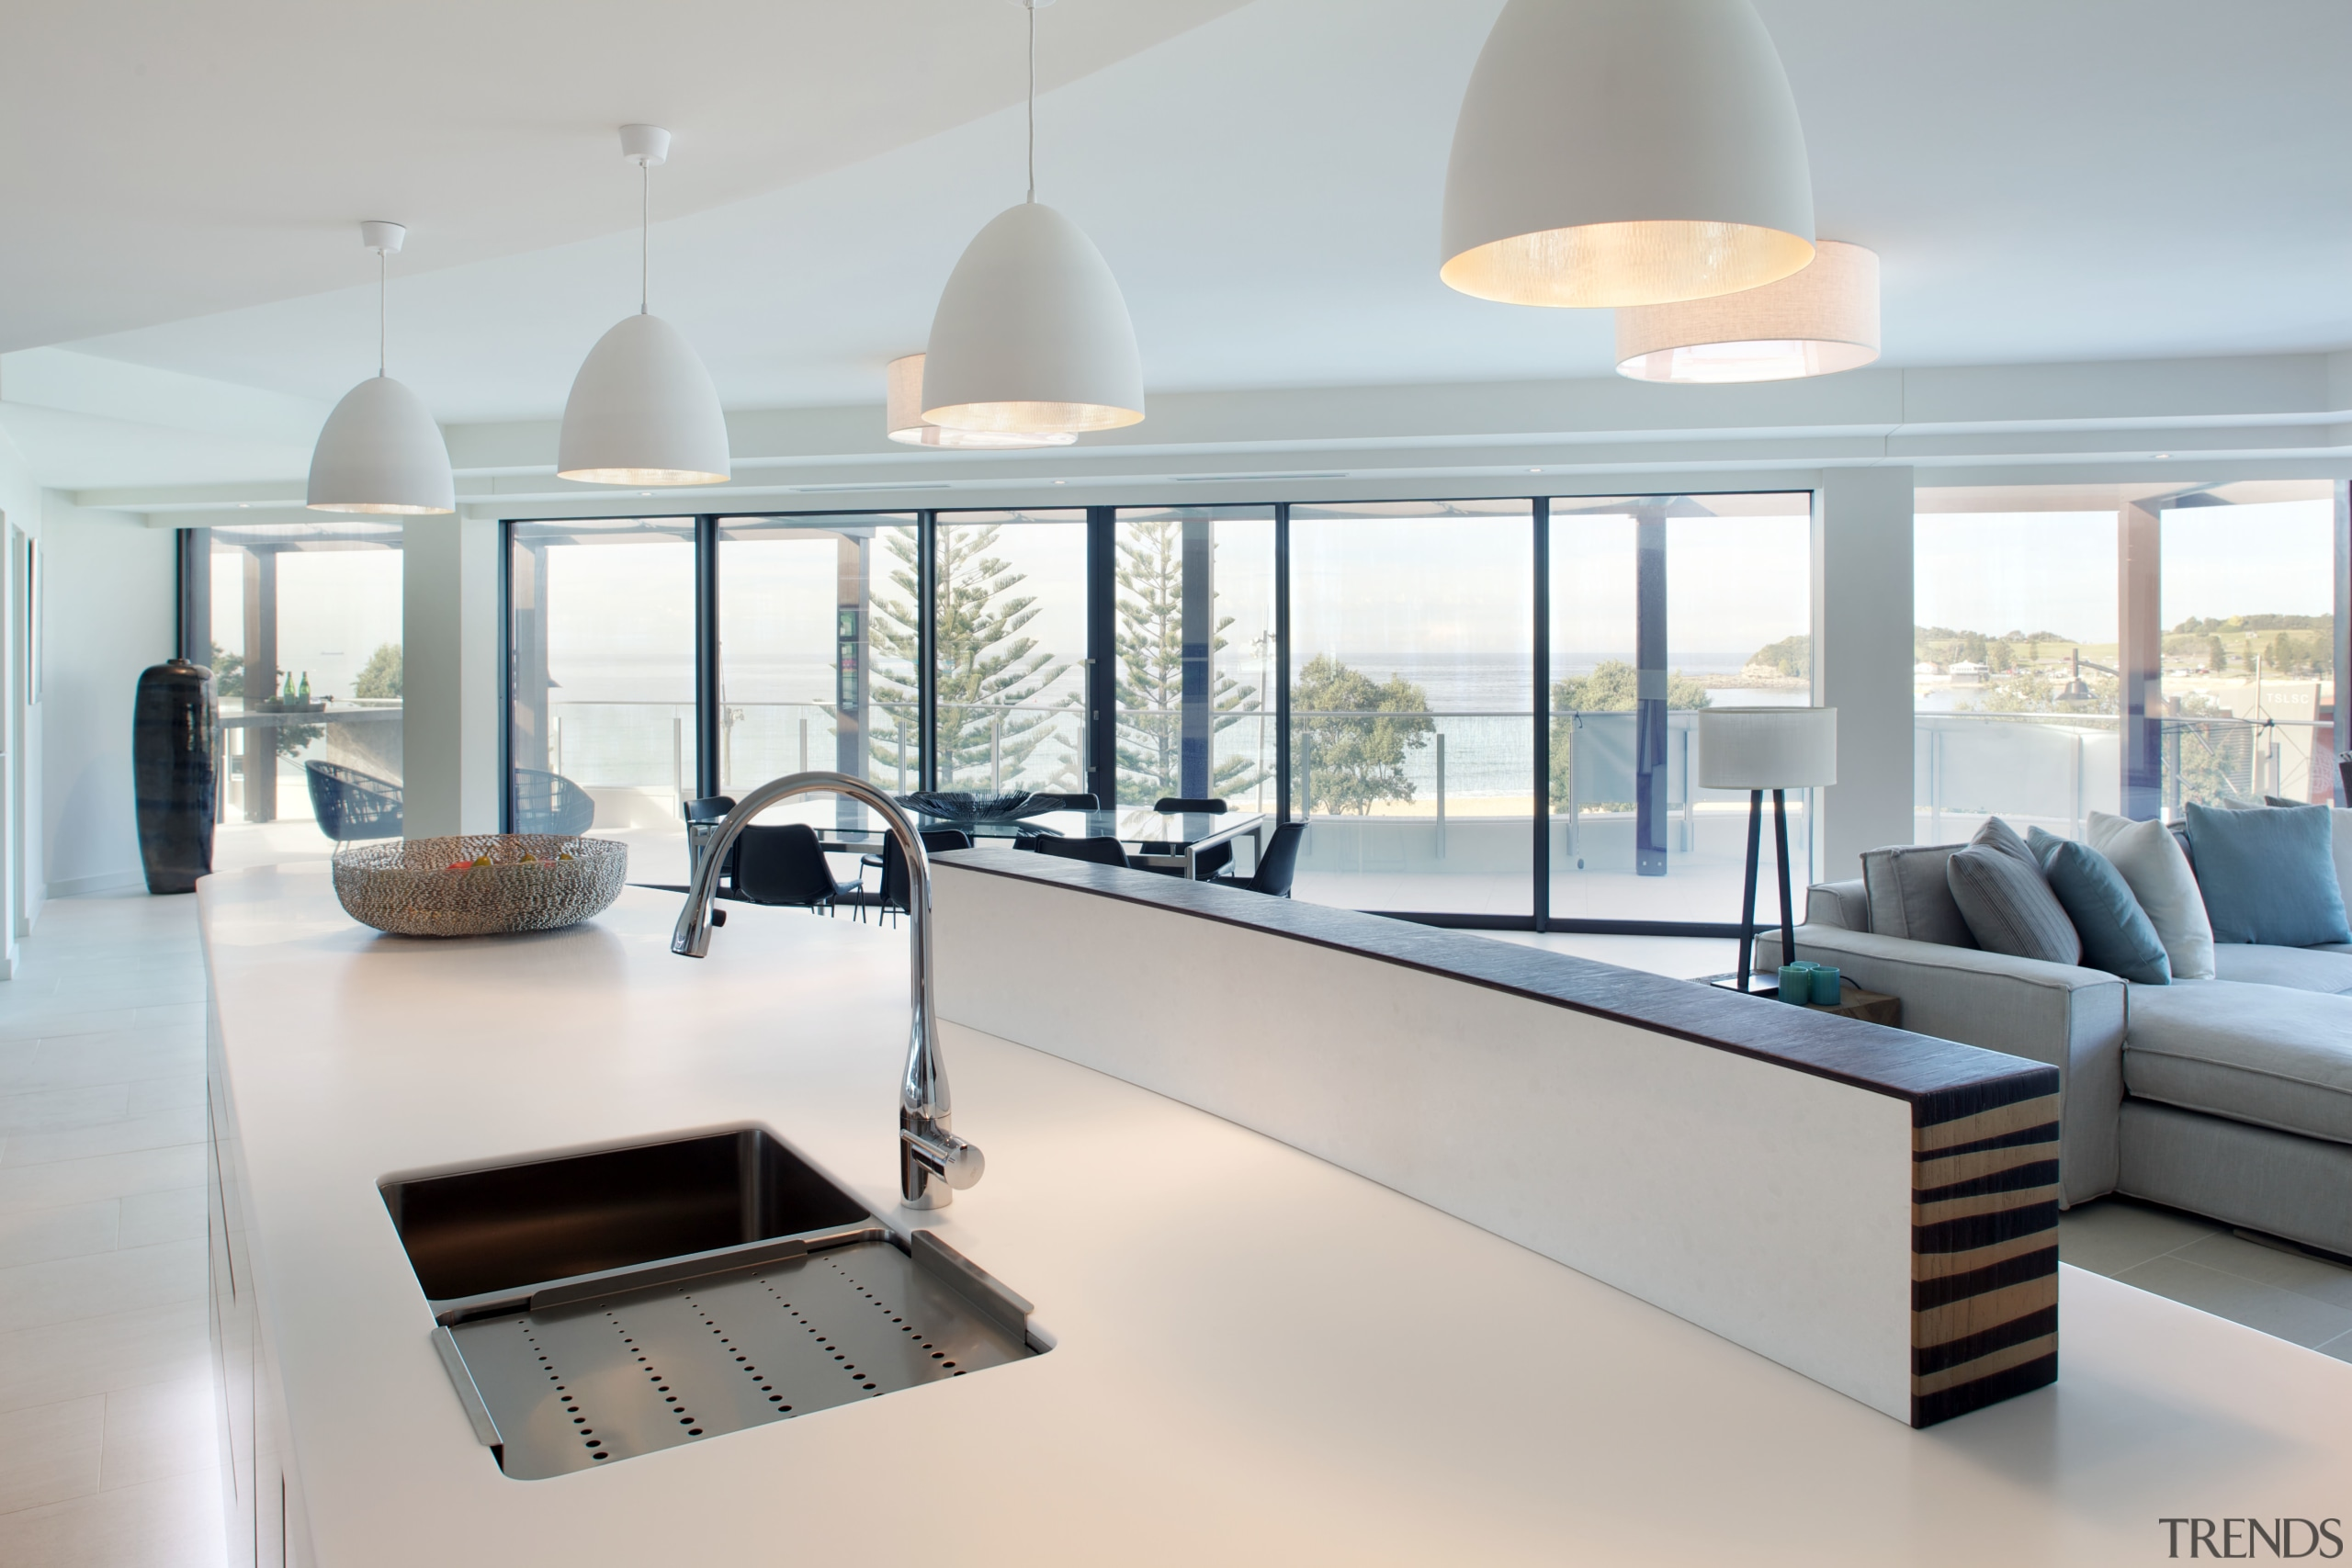 This penthouse open plan kitchen features an upstand furniture, interior design, living room, product design, table, window, gray